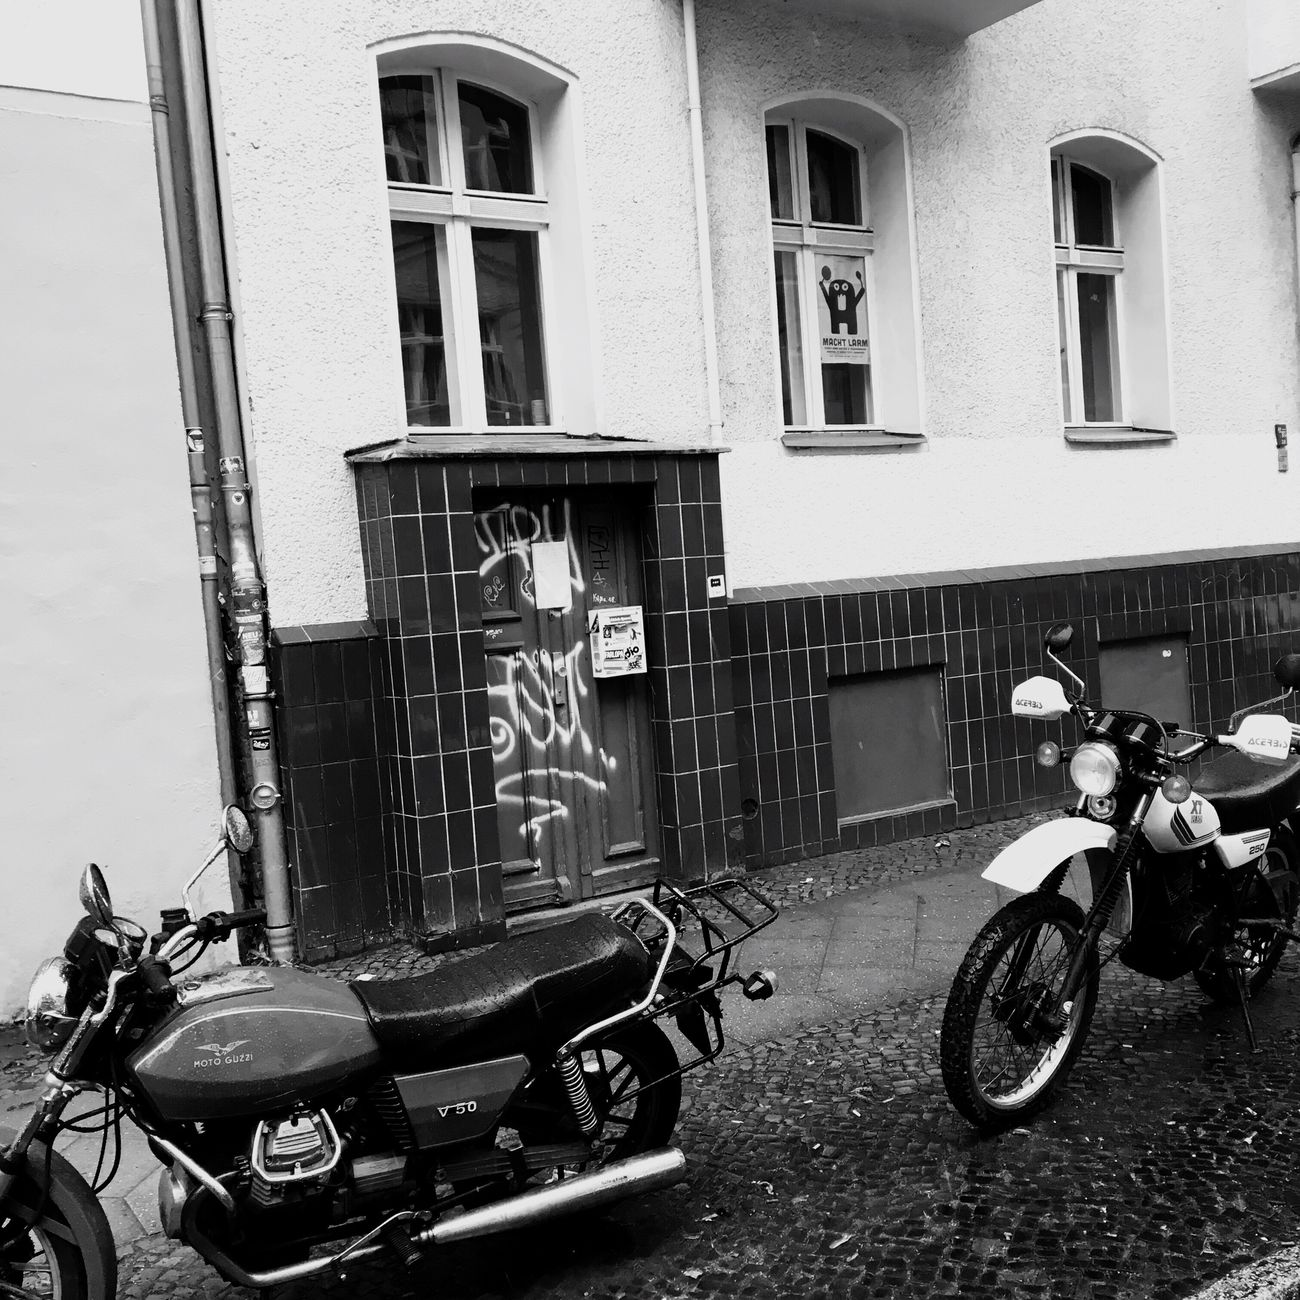 Vintage Motorcycles guzzi yamaha_xt Building Exterior Mode Of Transport Built Structure Transportation Architecture Stationary Land Vehicle Bicycle Day Outdoors Parking Motorcycle Scooter Motorbike No People